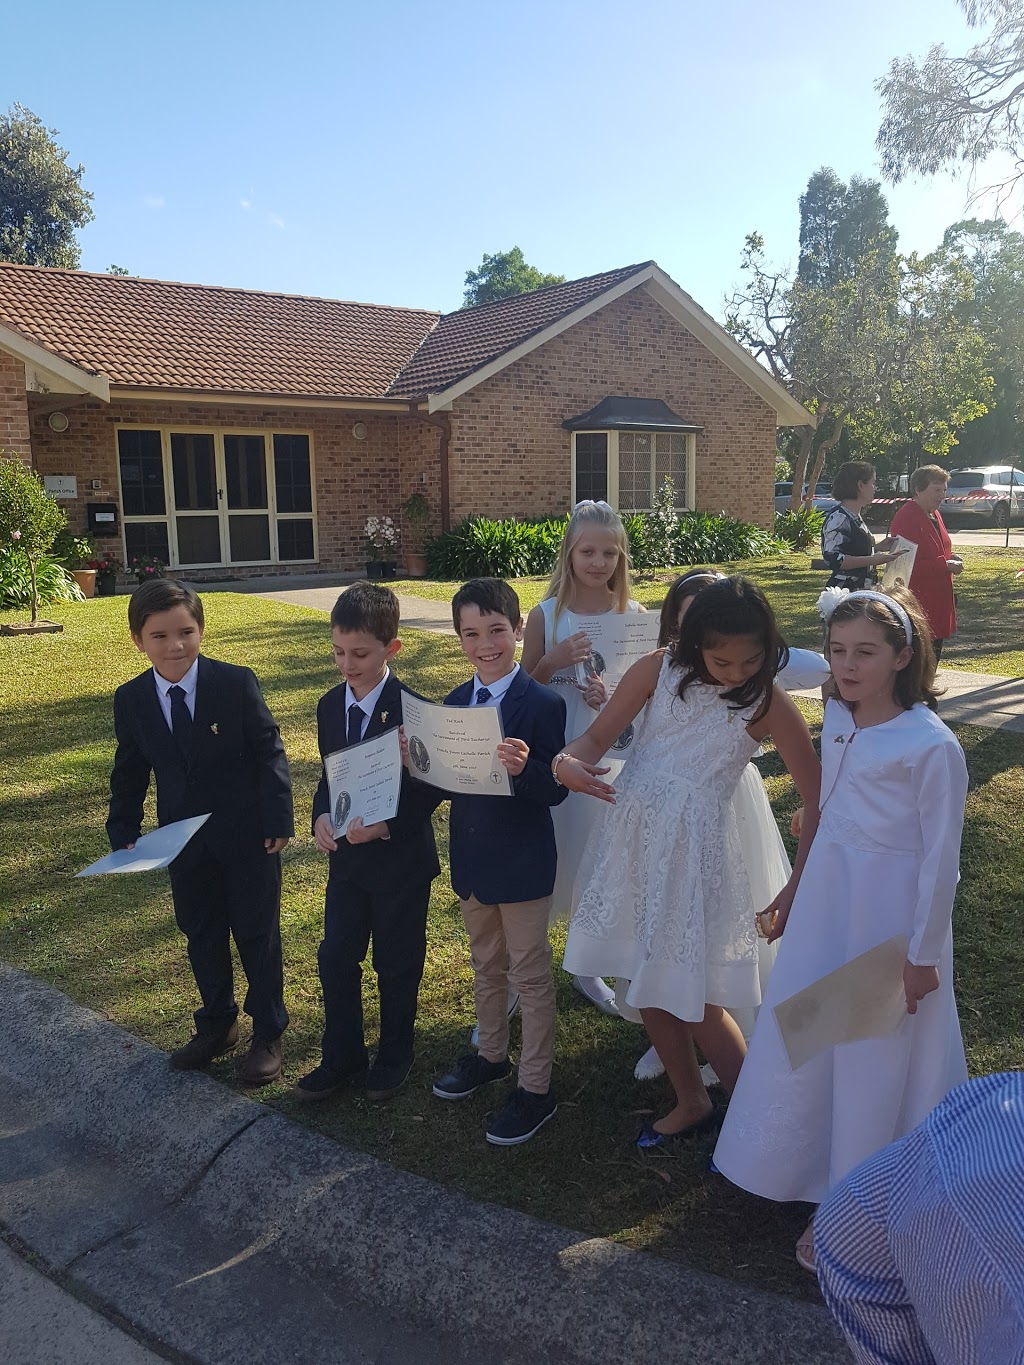 Frenchs Forest Catholic Parish - Parish Office | church | 9 Currie Rd, Forestville NSW 2087, Australia | 0294515097 OR +61 2 9451 5097